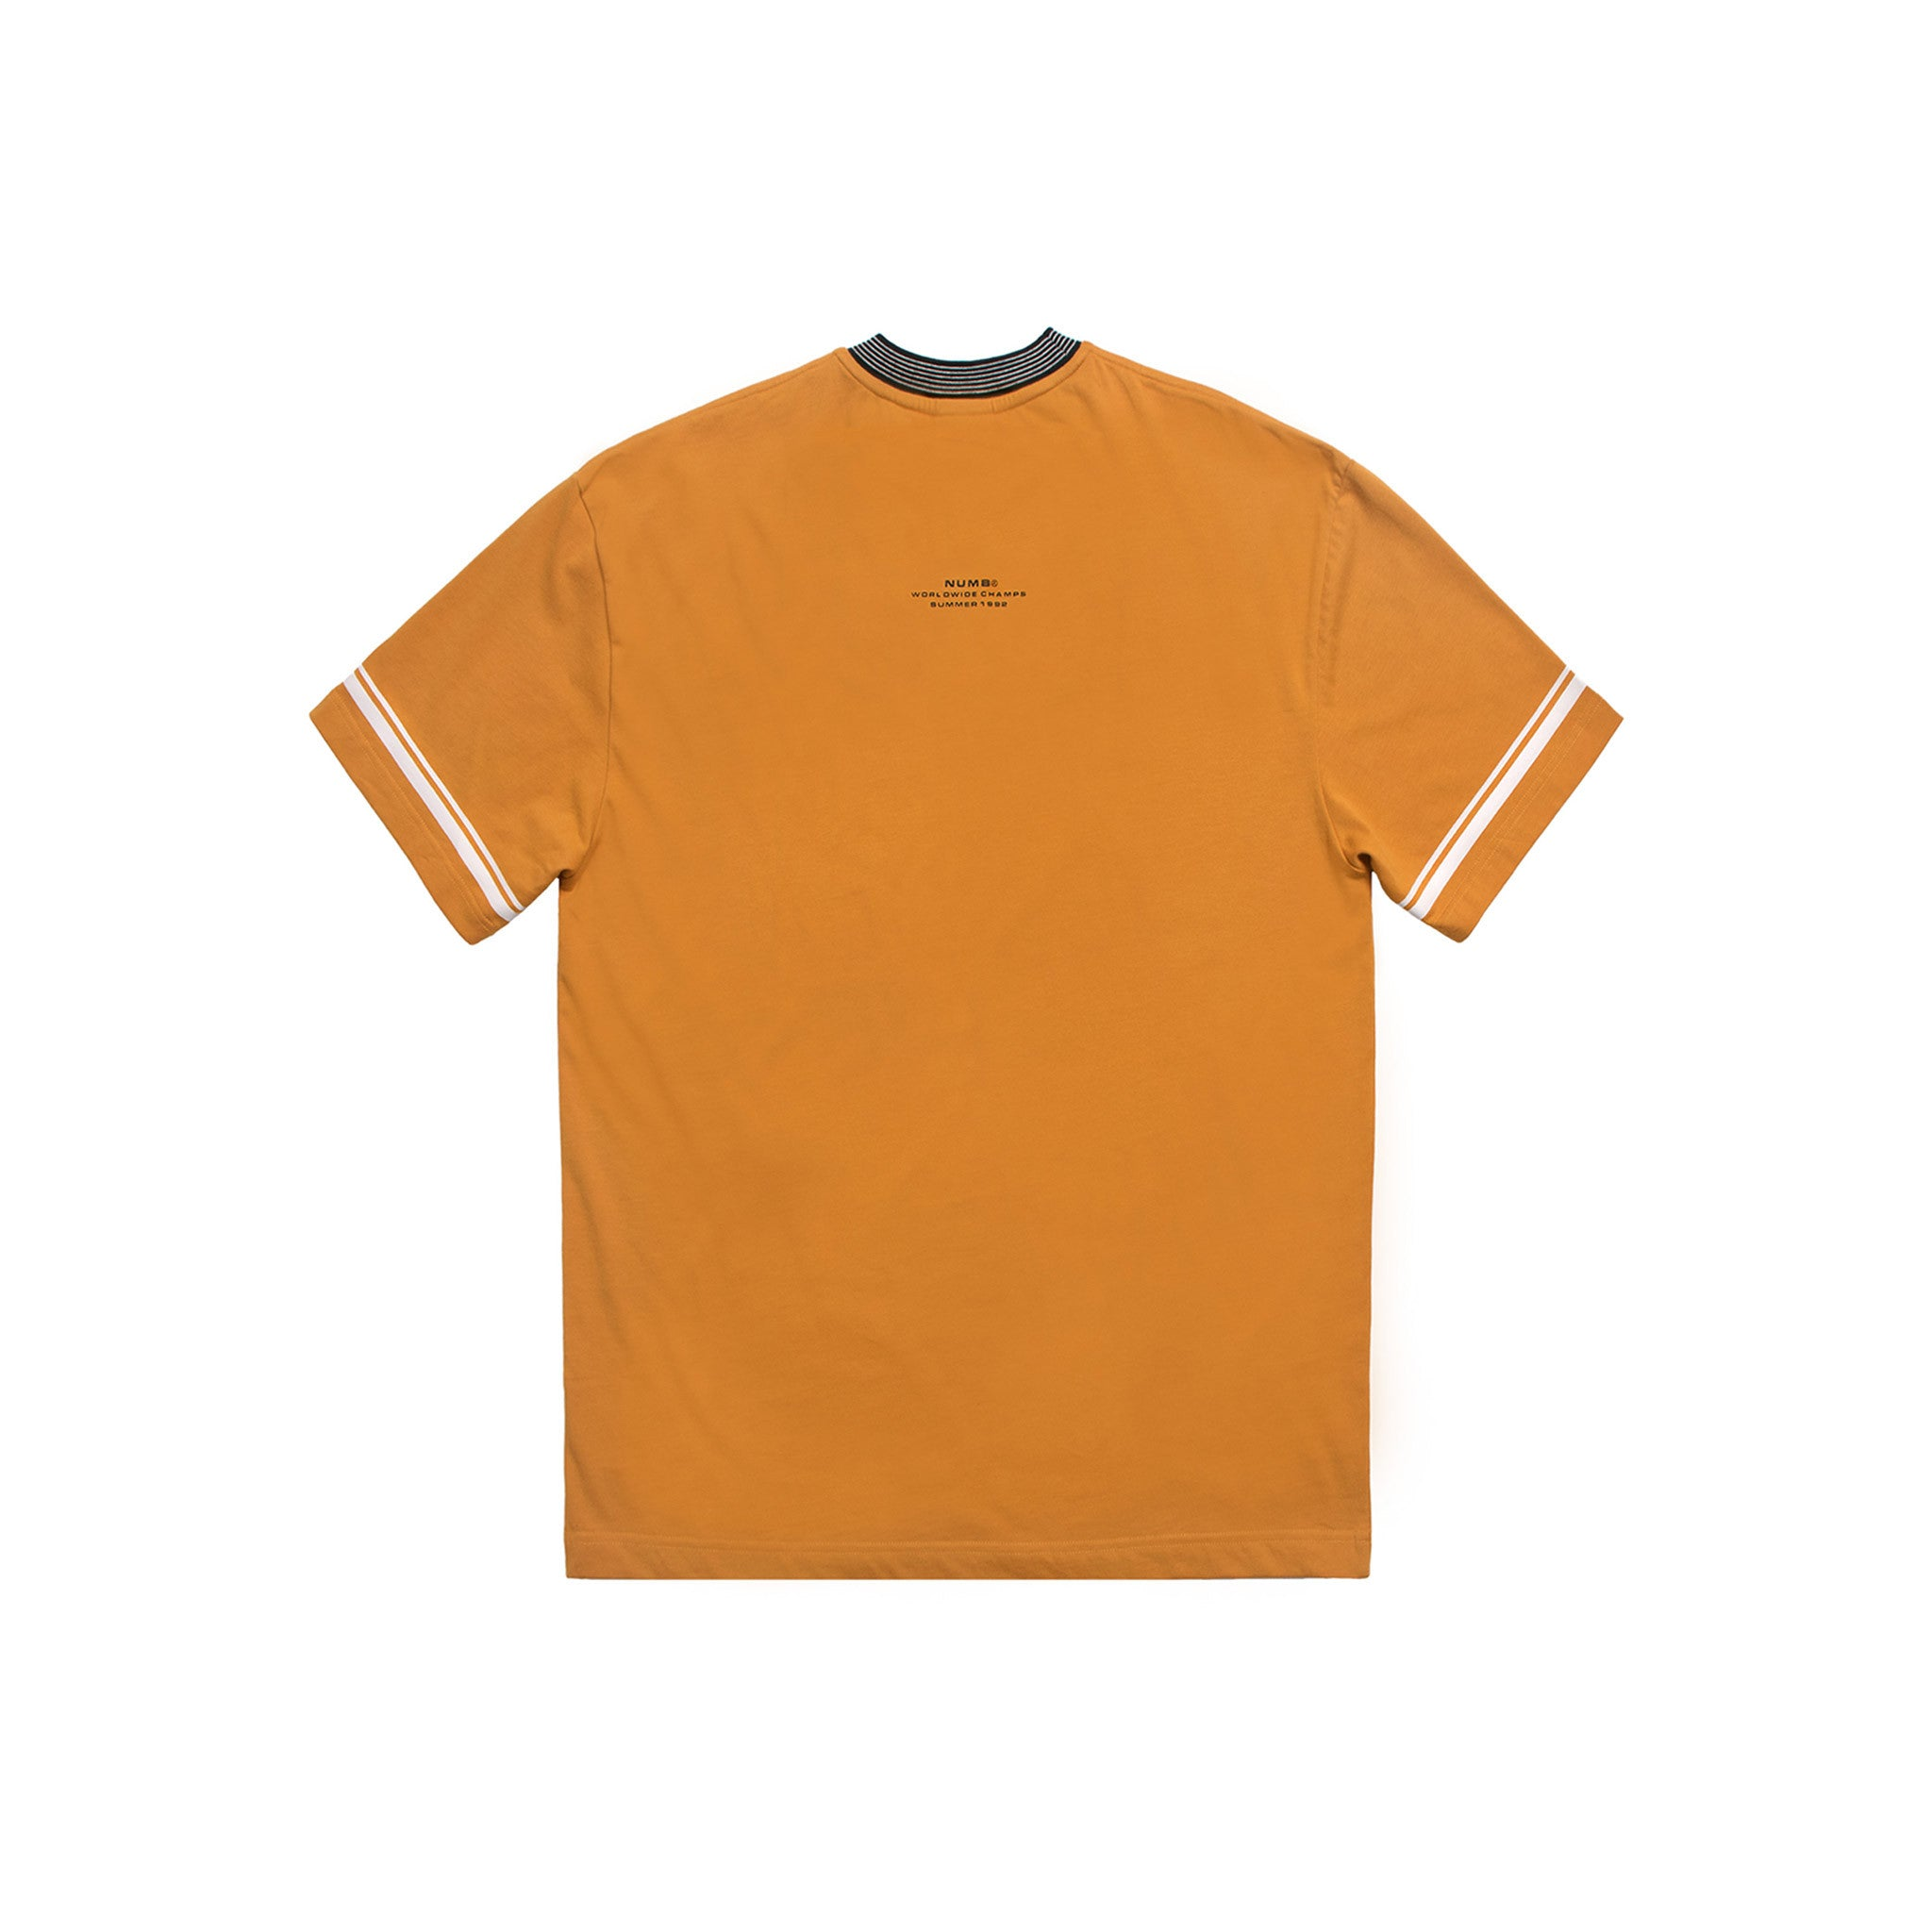 Worldwide Champs Jersey Numb T-Shirt Mustard Back View